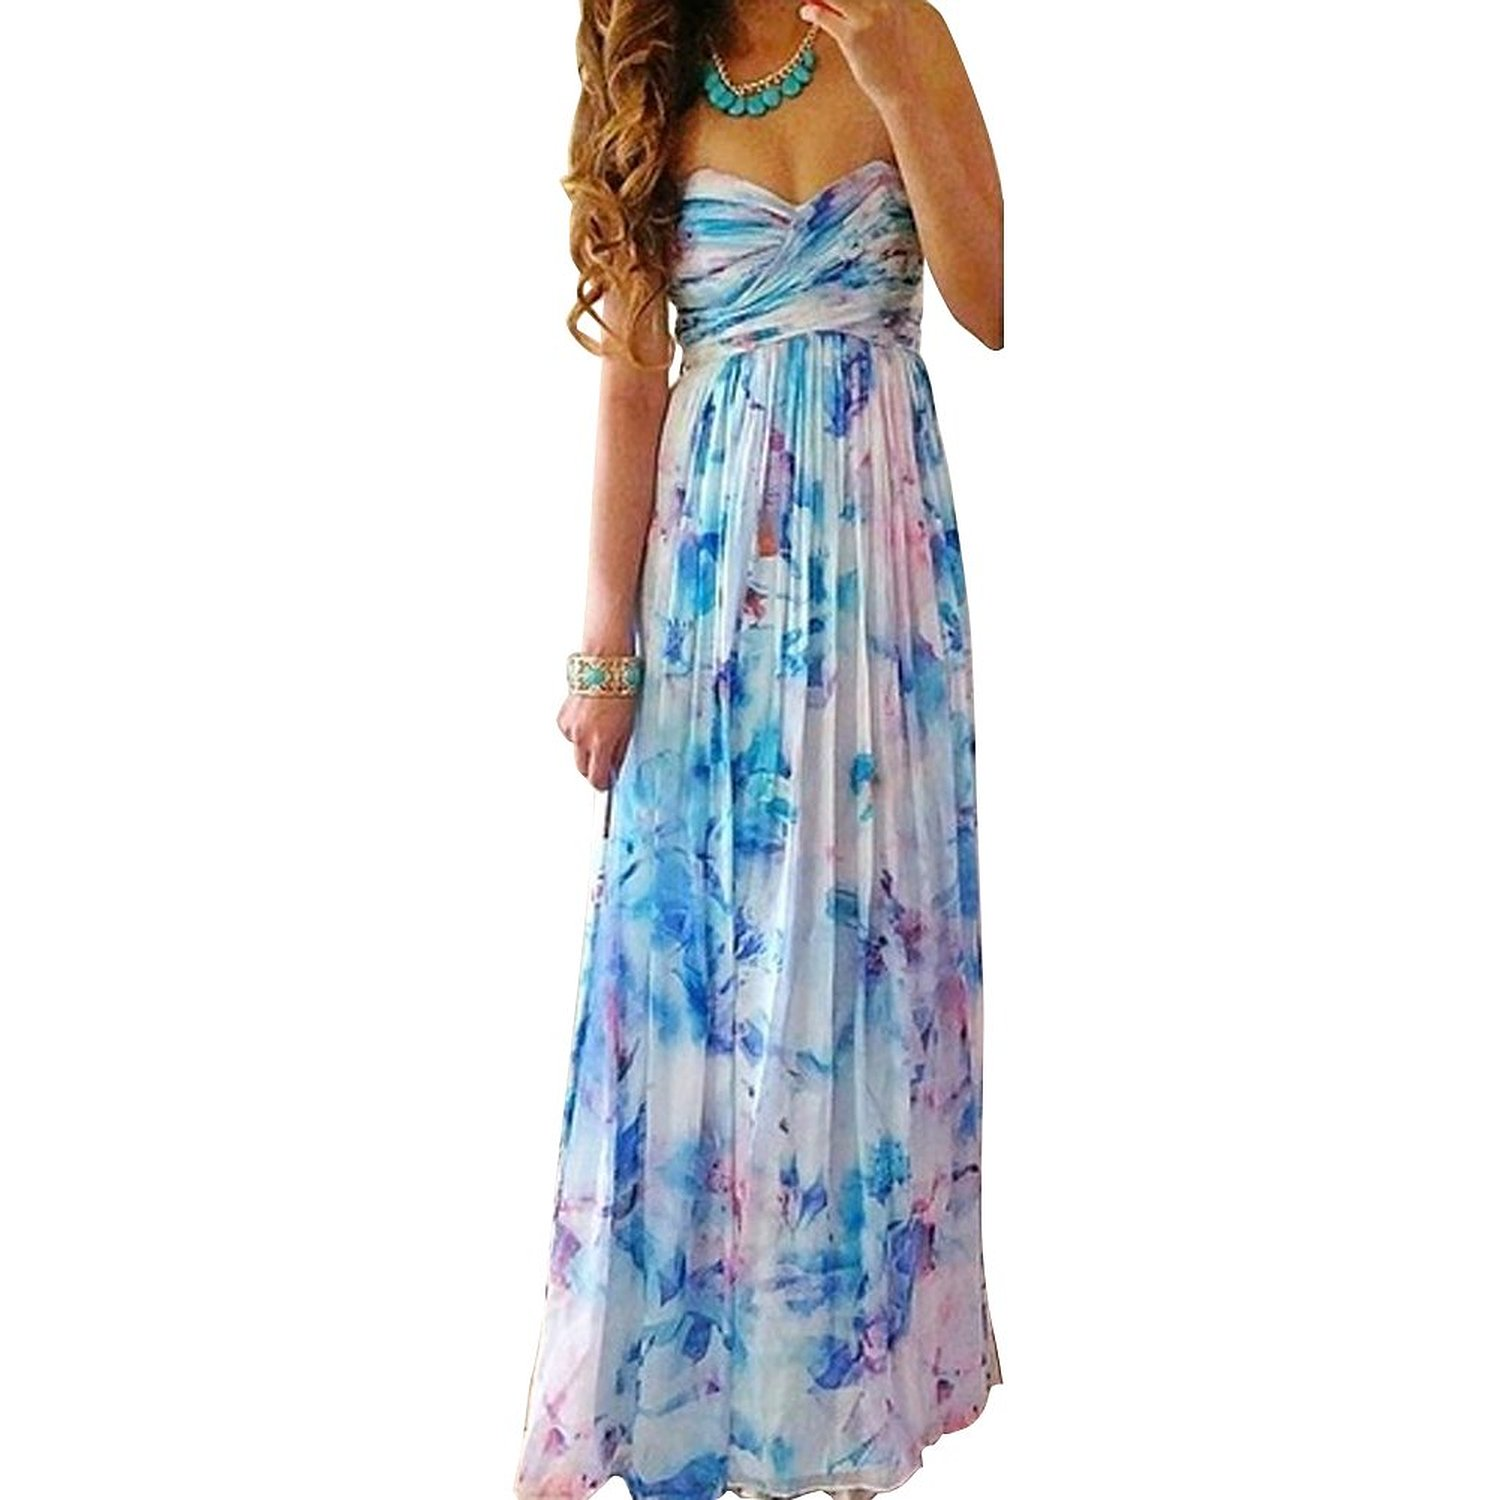 Janecrafts Women's Summer Strapless Chiffon Boho Long Maxi ...